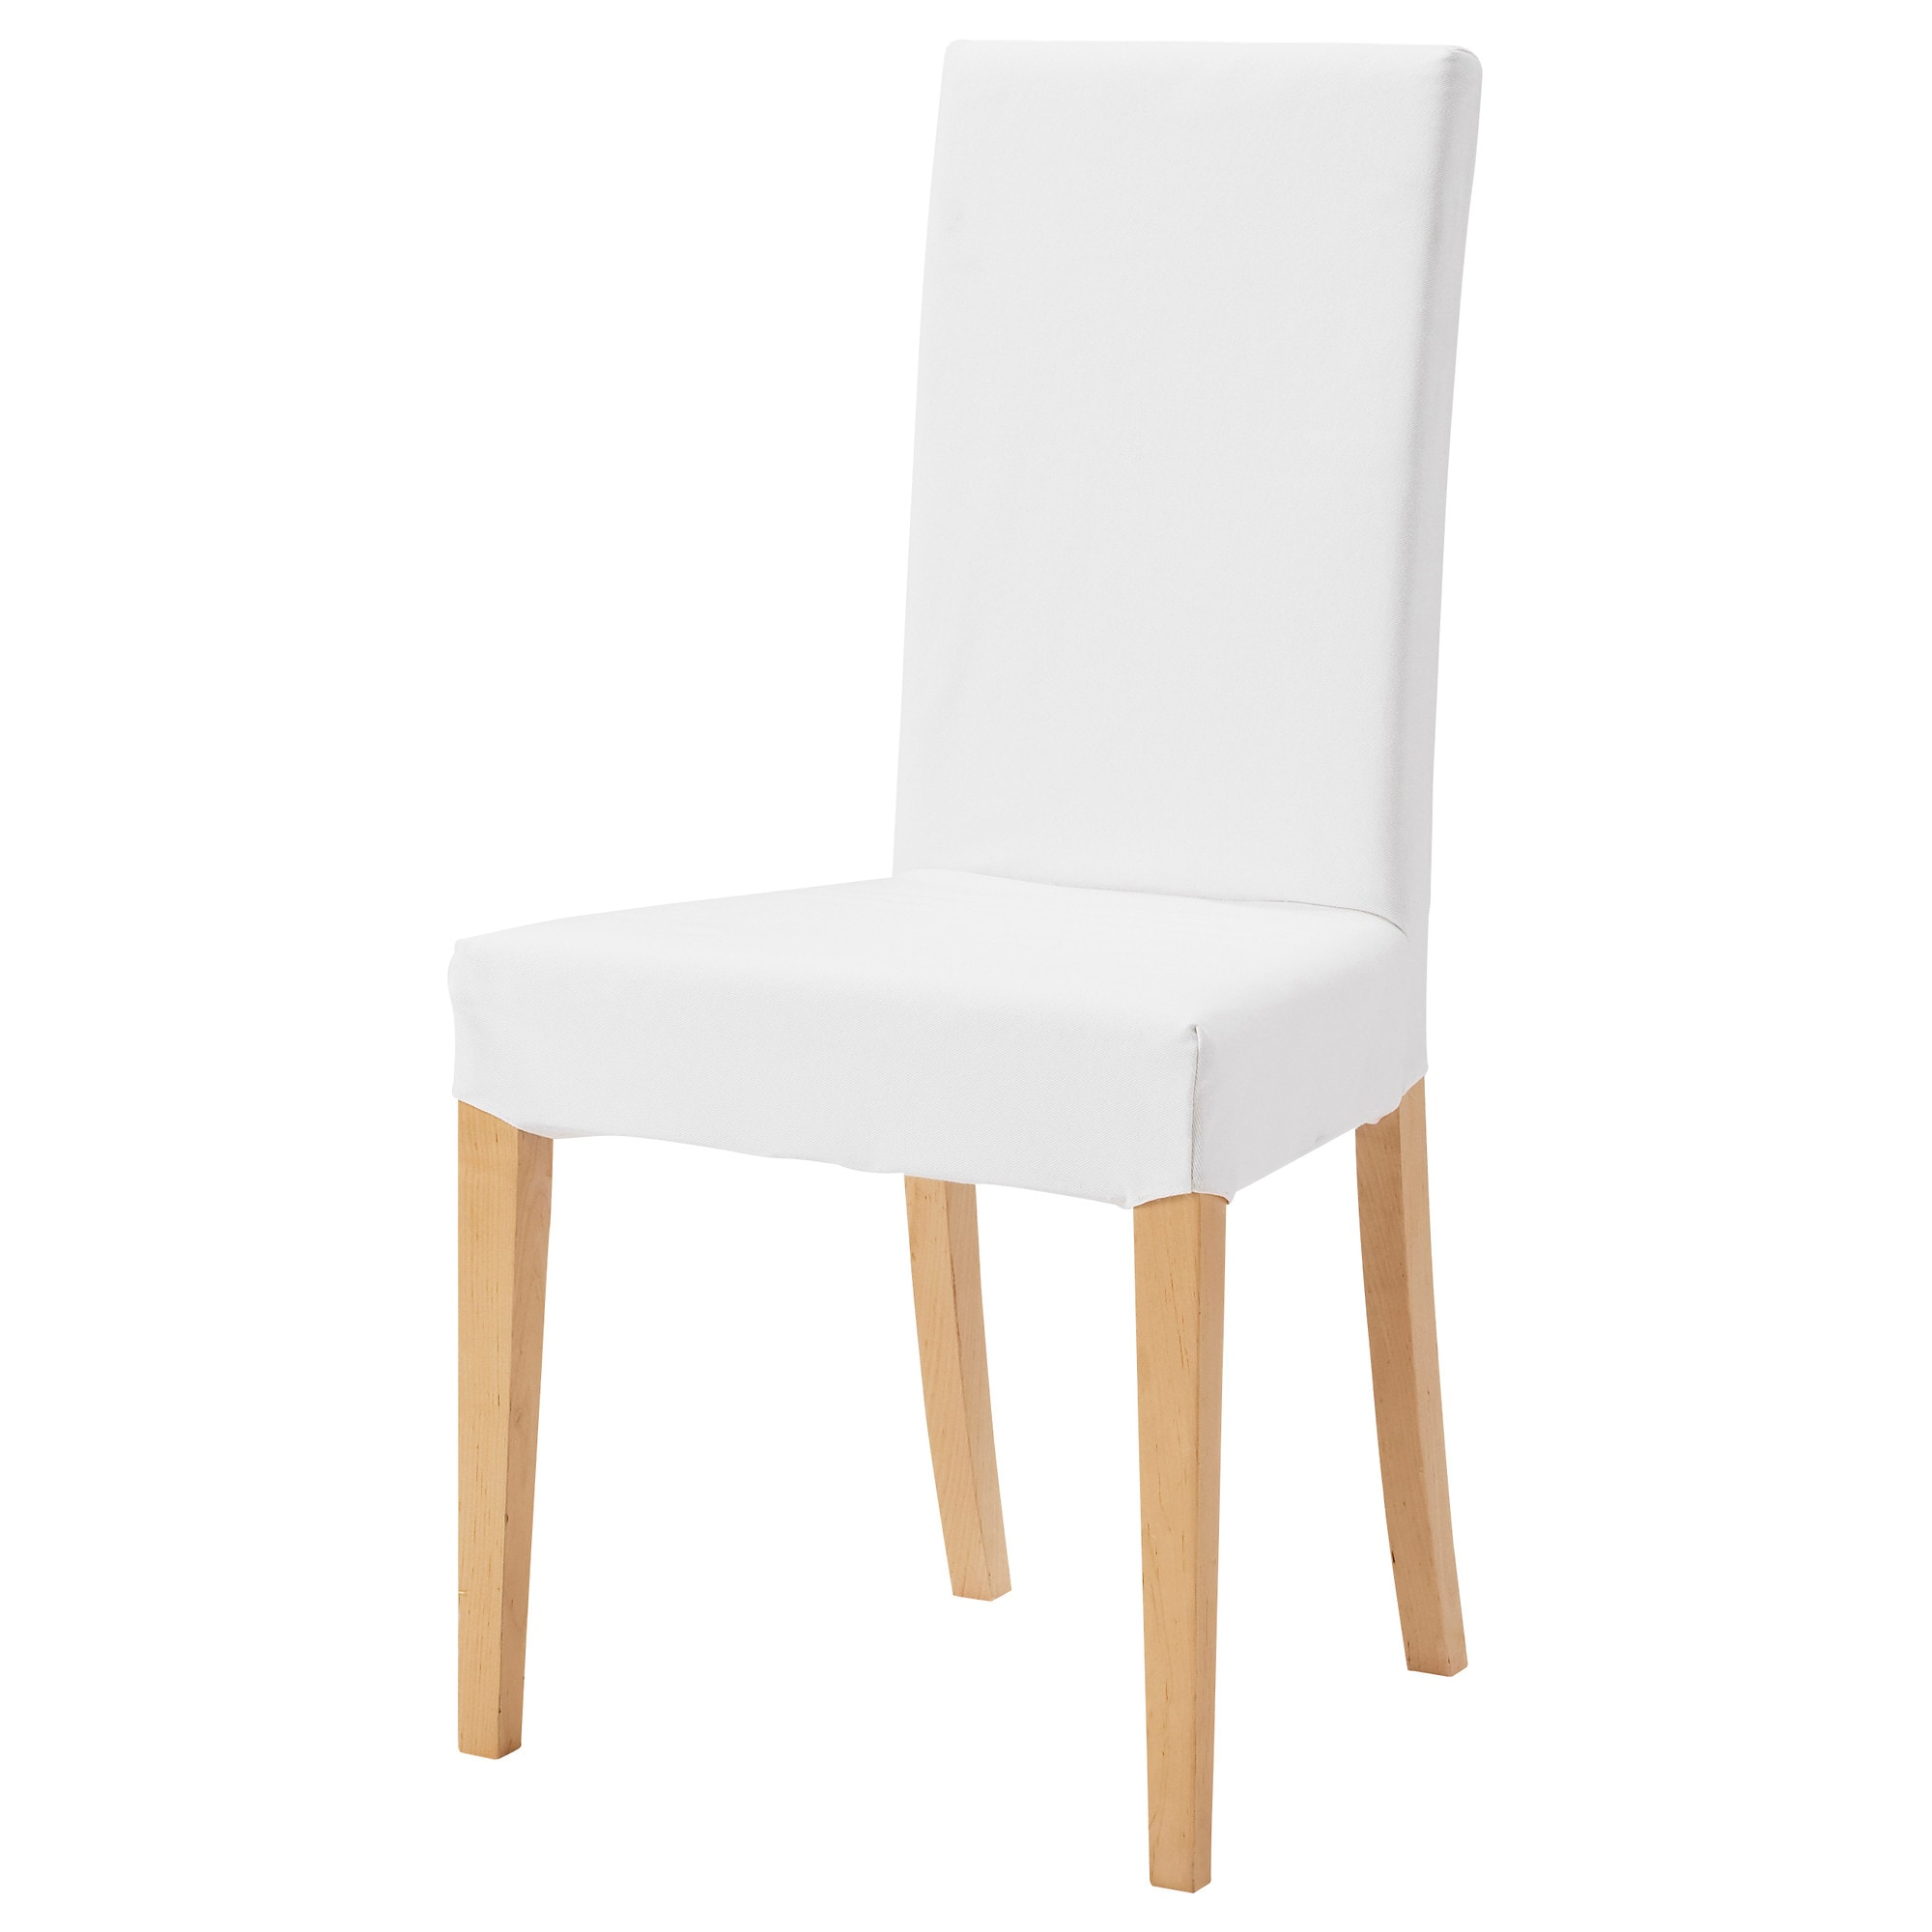 HARRY Chair - IKEA